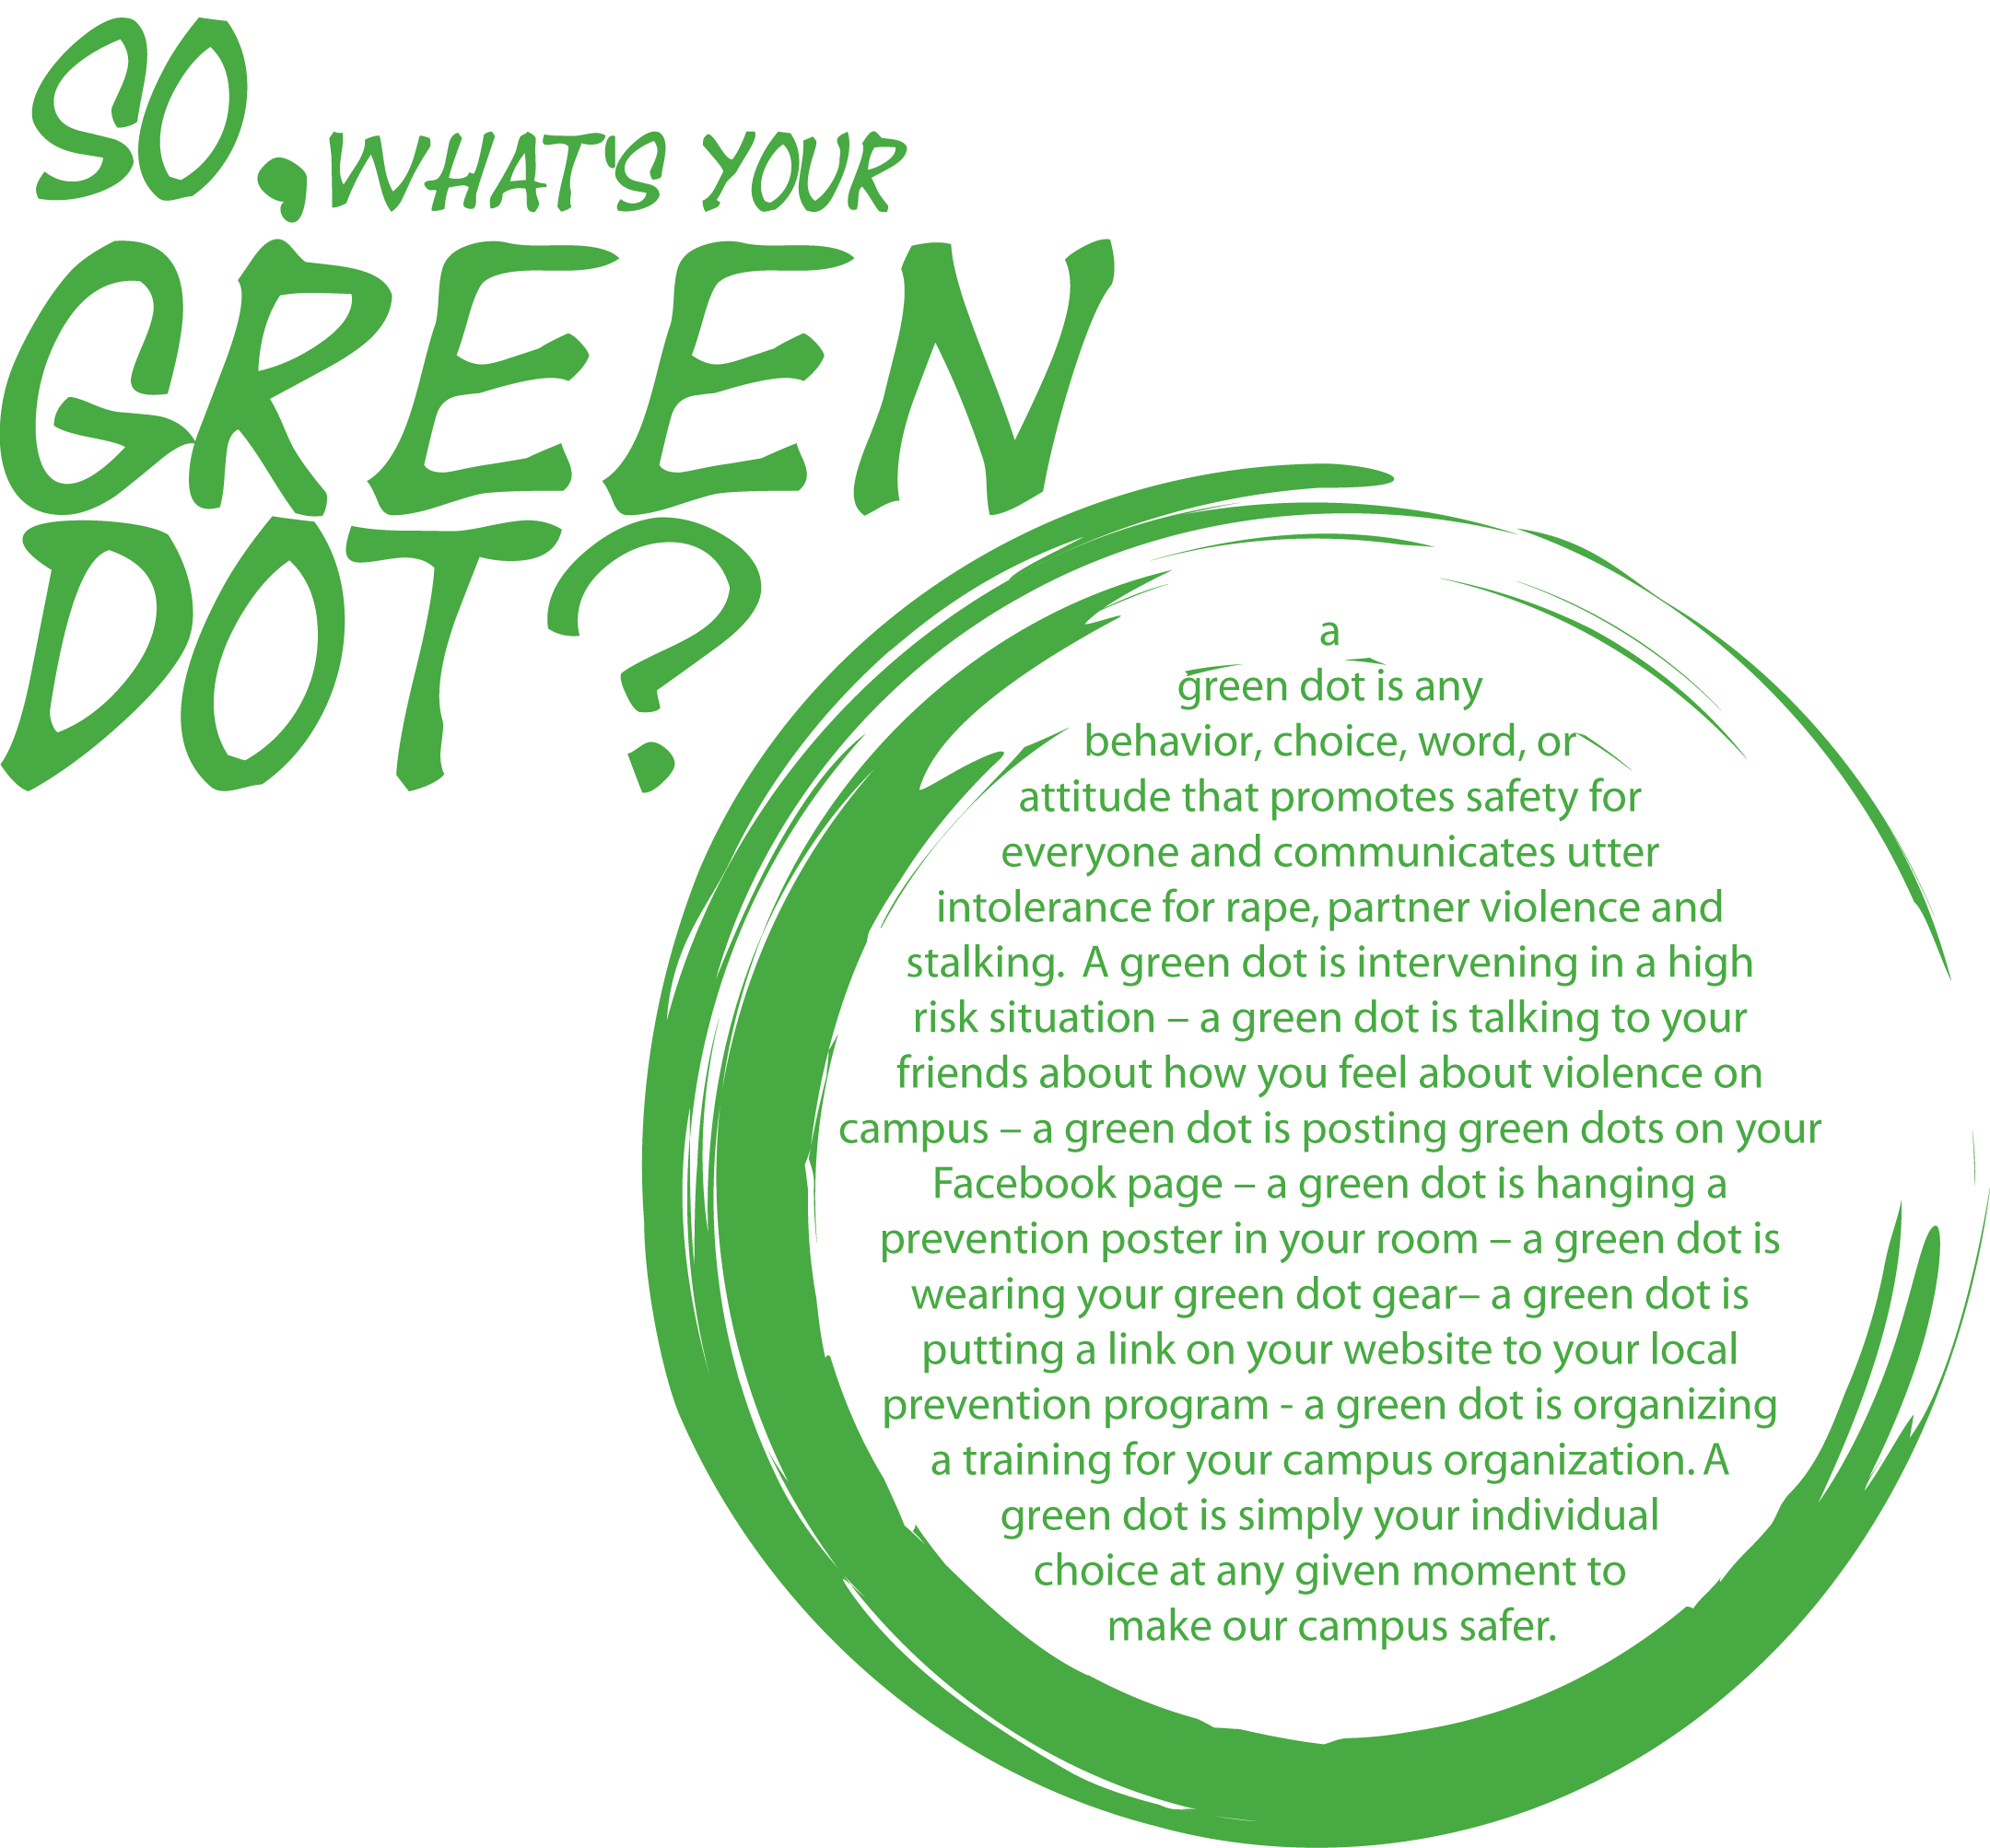 A Green Dot is any behavior, choice, word, or attitude that promotes safety for everyone and communicates utter intolerance for rape, partner violence, or stalking.